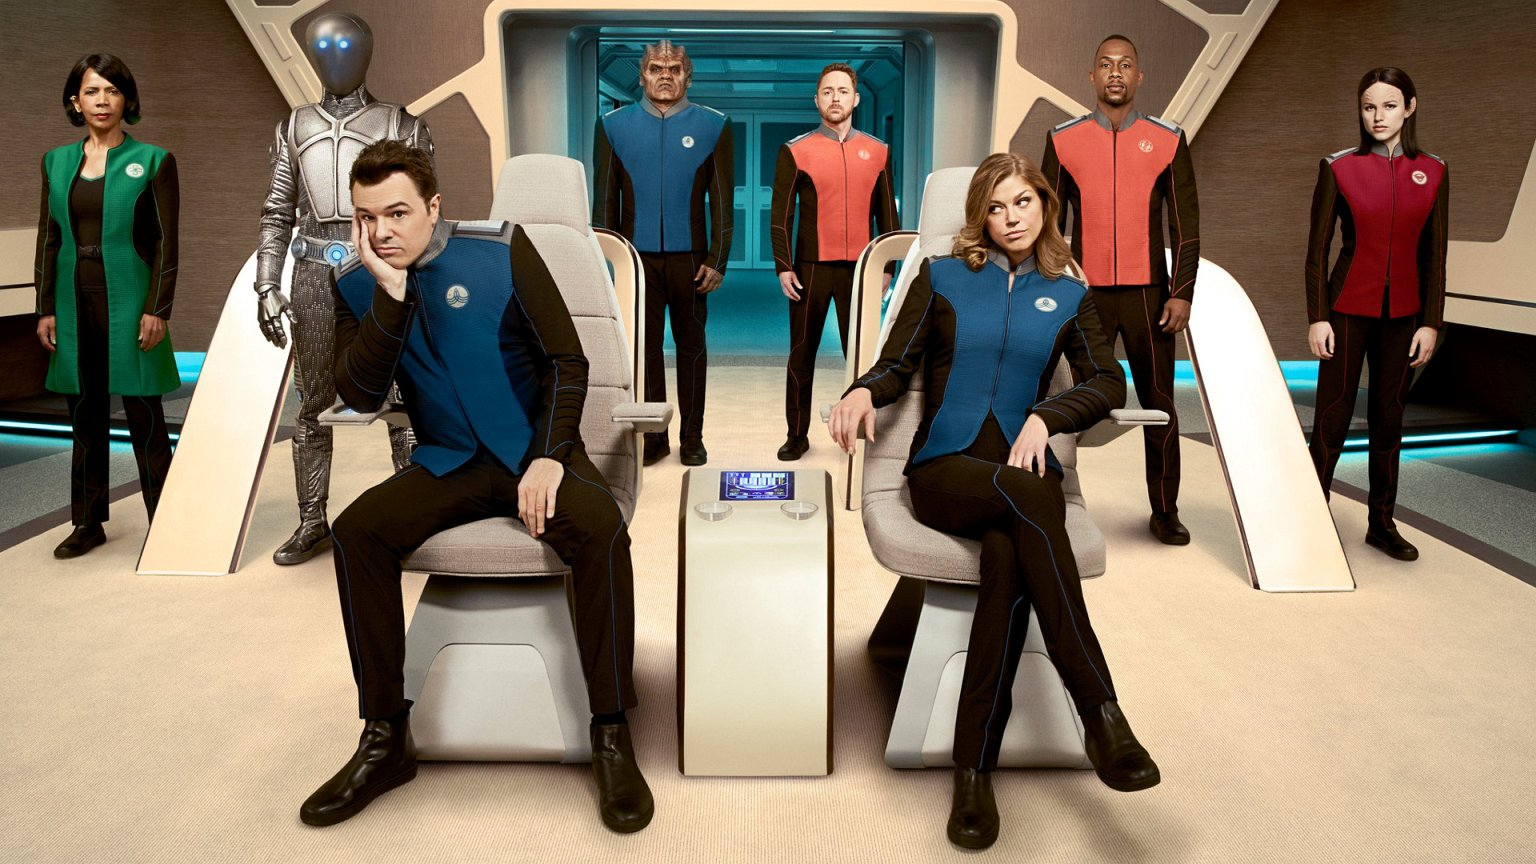 The Orville S2 episode 8 watch online